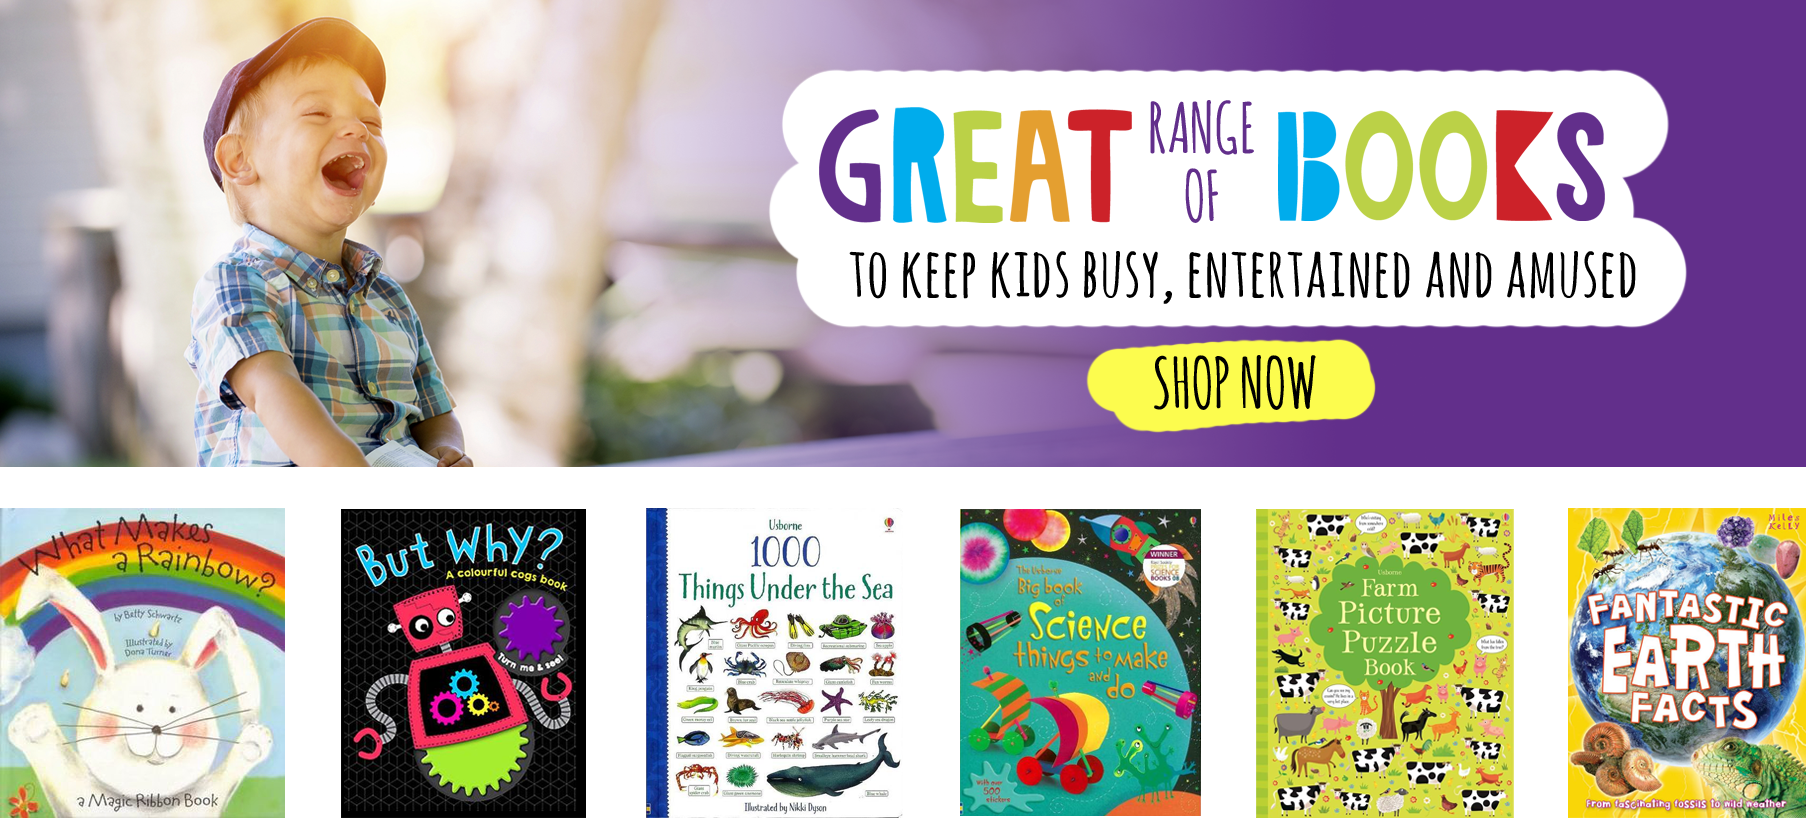 Great range of books to keep kids busy, entertained and amused